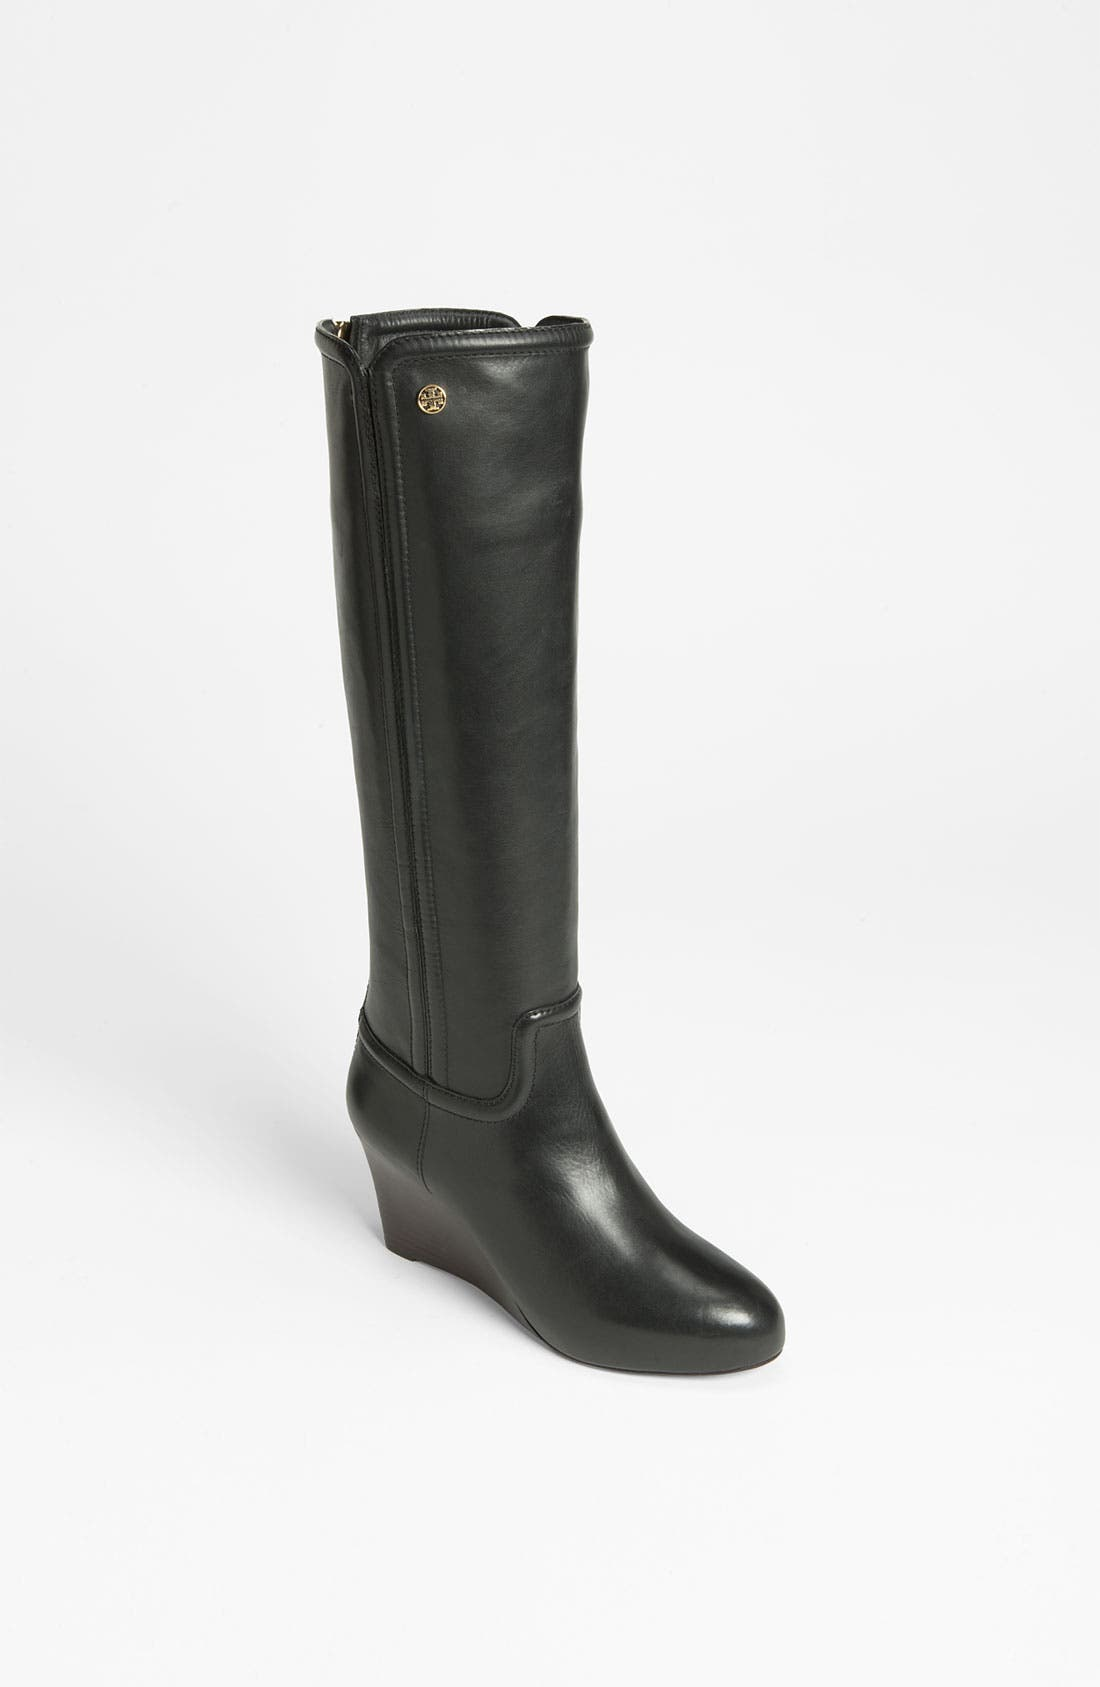 Alternate Image 1 Selected - Tory Burch 'Irene' Wedge Boot